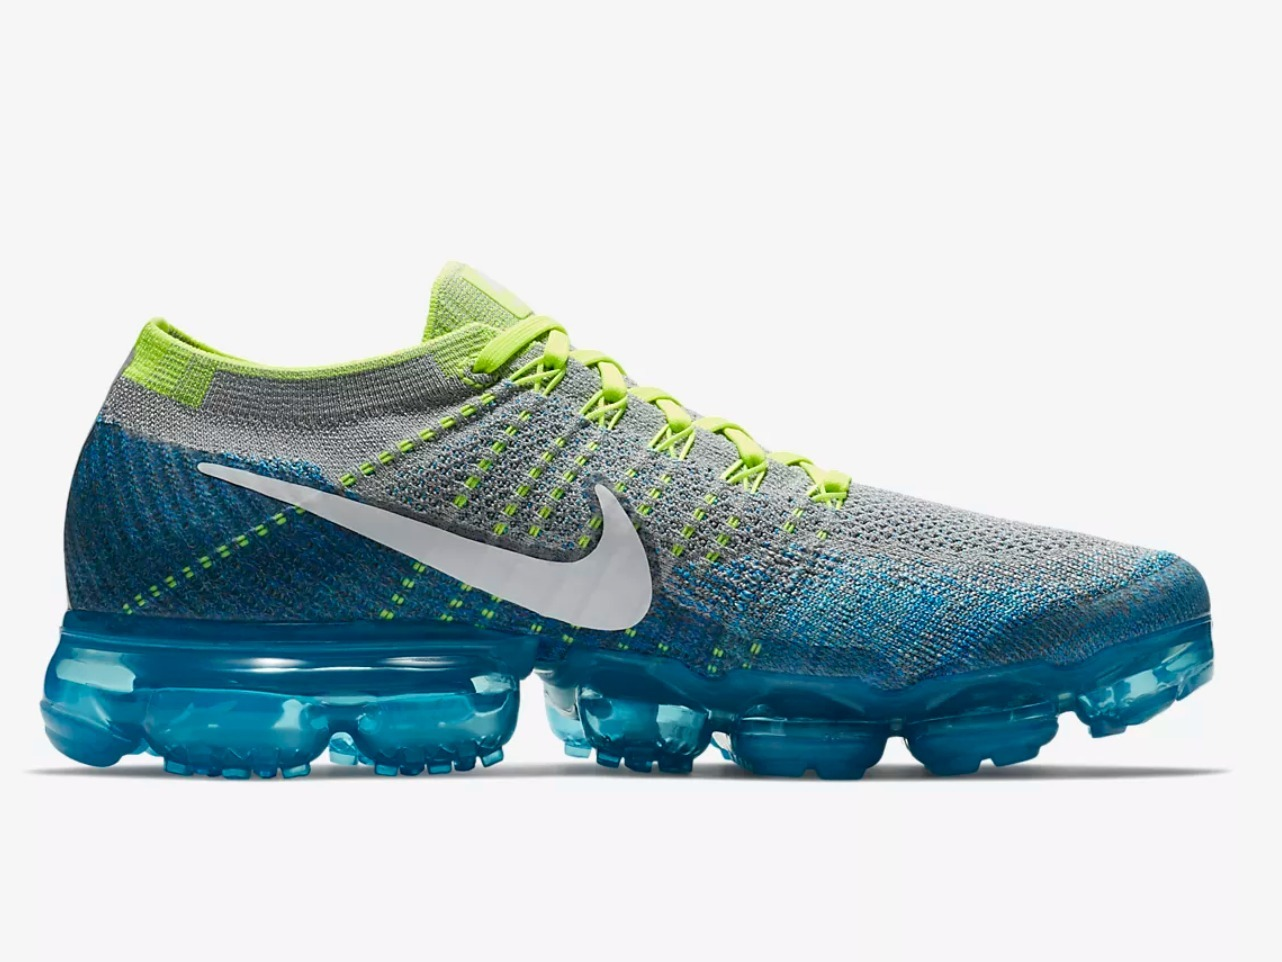 NIKE AIR VAPORMAX FLYKNIT WolfGreyBlue Men's Running Shoe